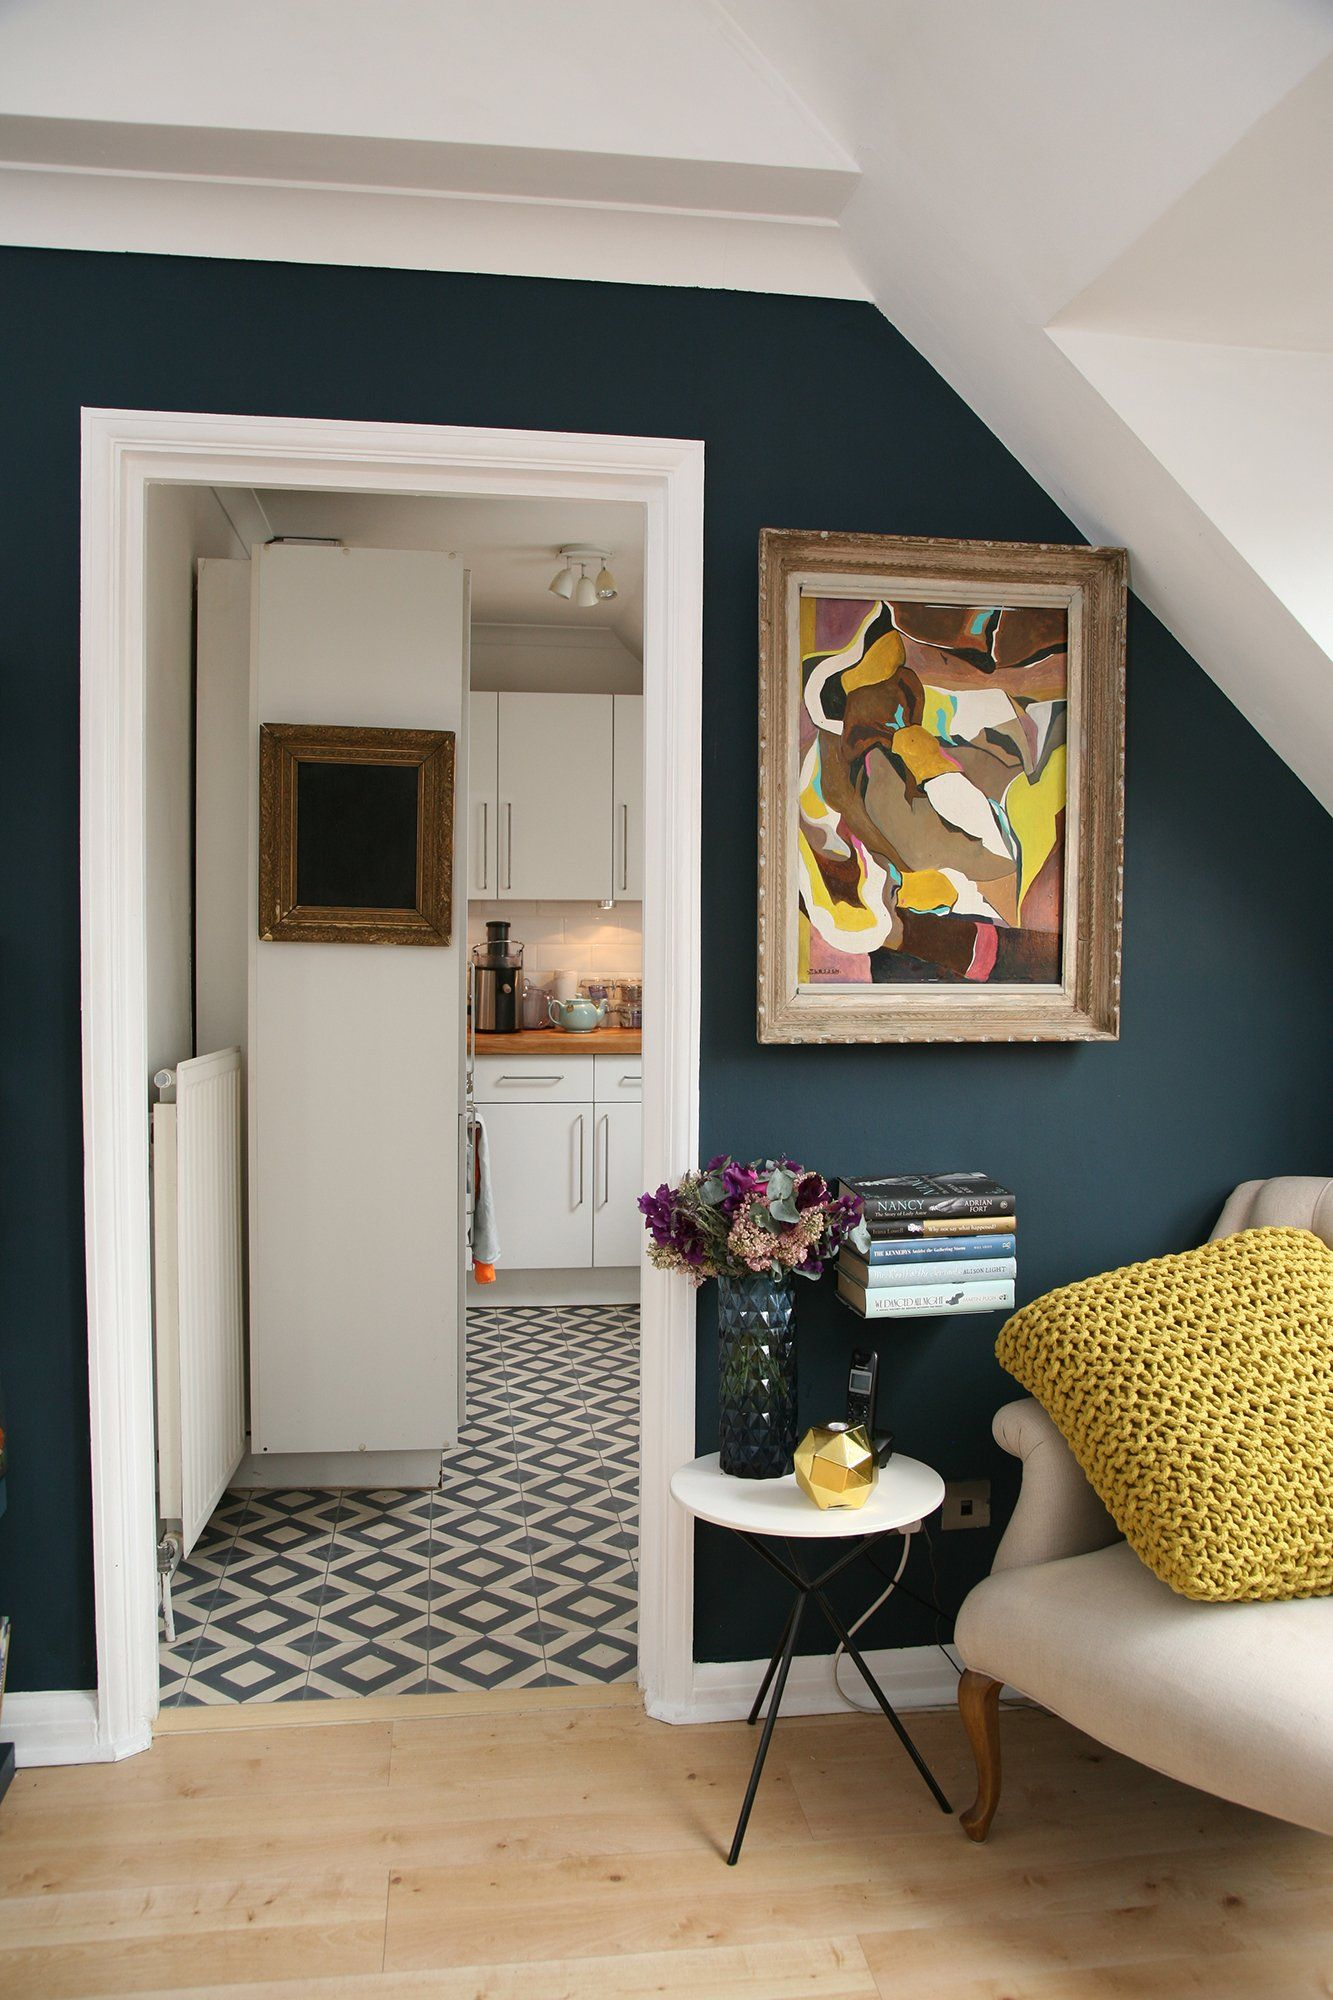 Paint colors that match this Apartment Therapy photo SW 7745